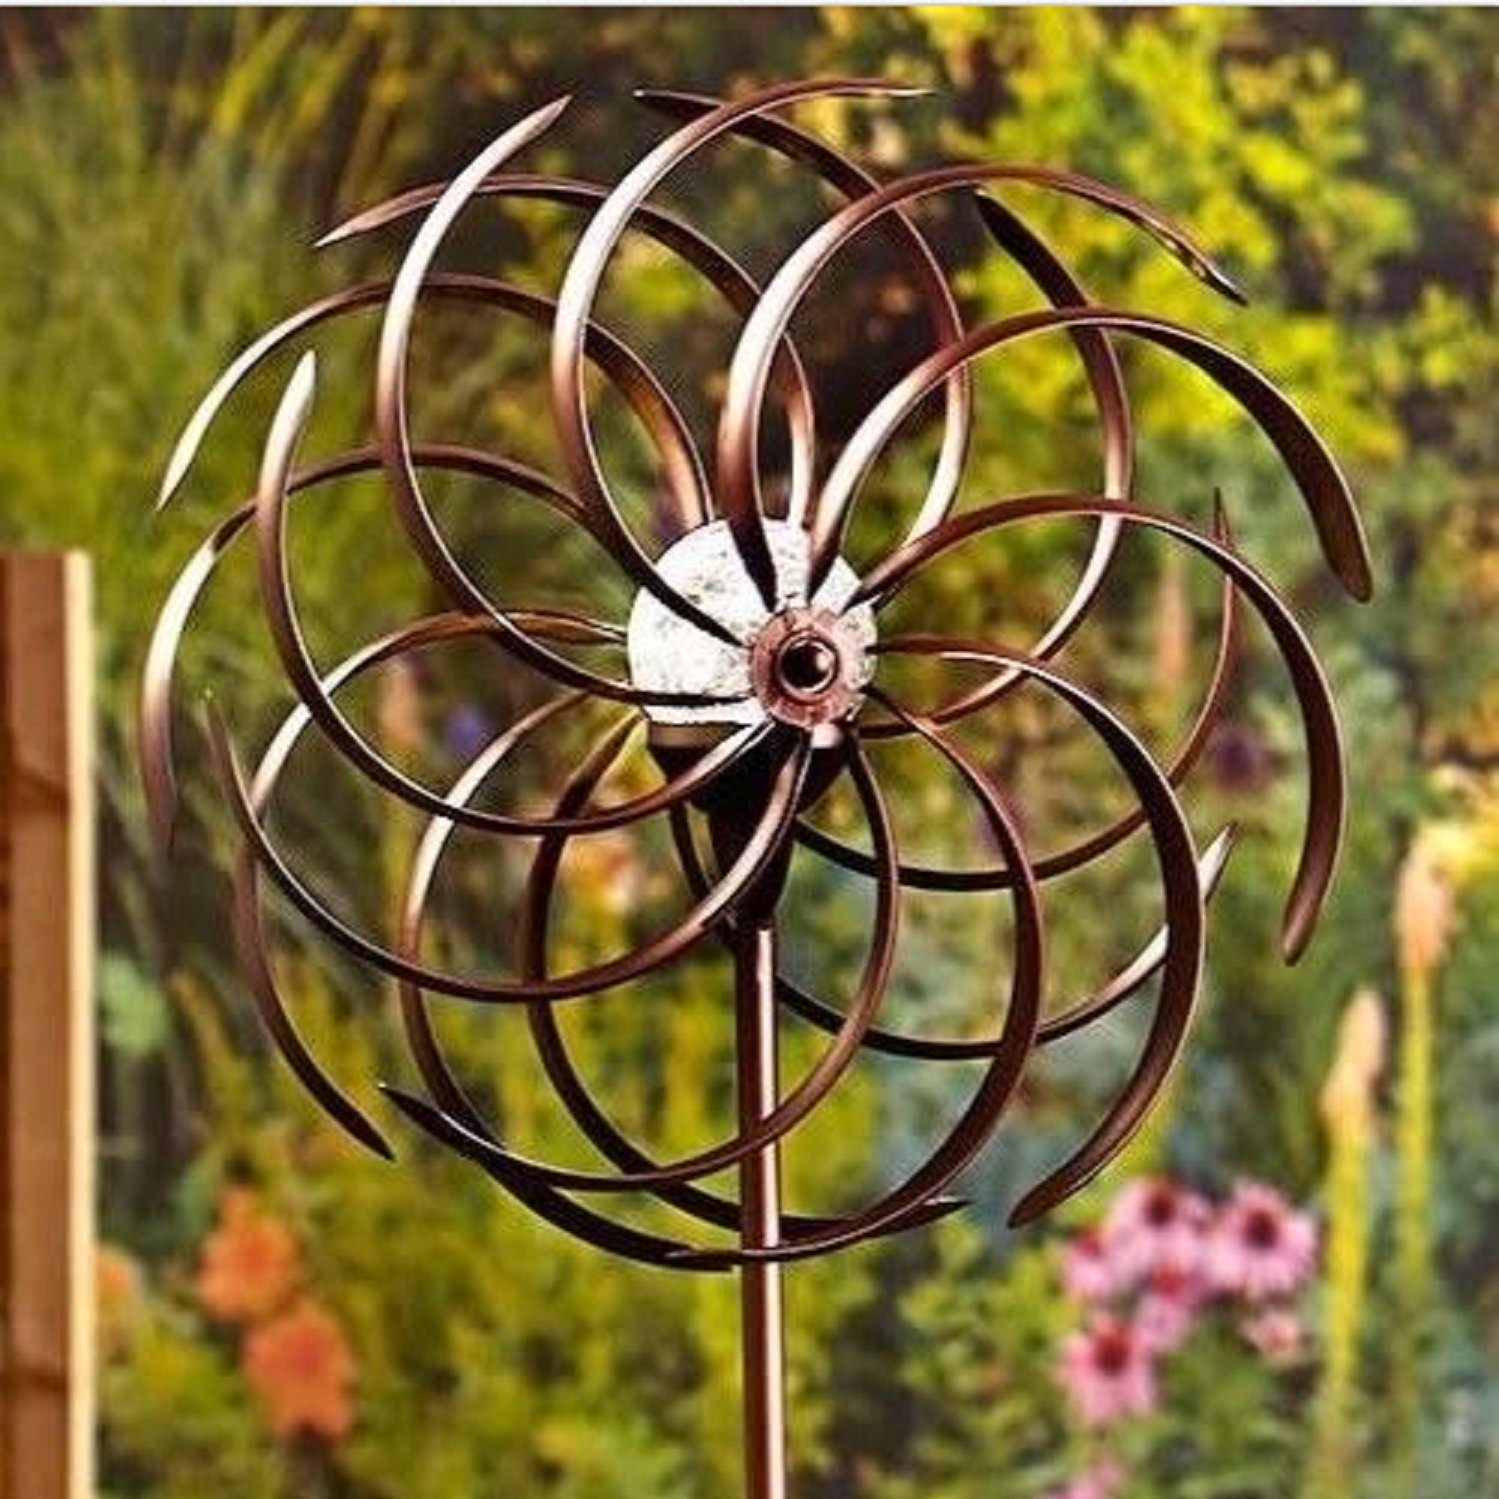 USA Premium Store Weather Resistant Double Spiral Solar Lighted Garden Wind Spinner Yard Art Decor by USA Premium Store (Image #2)